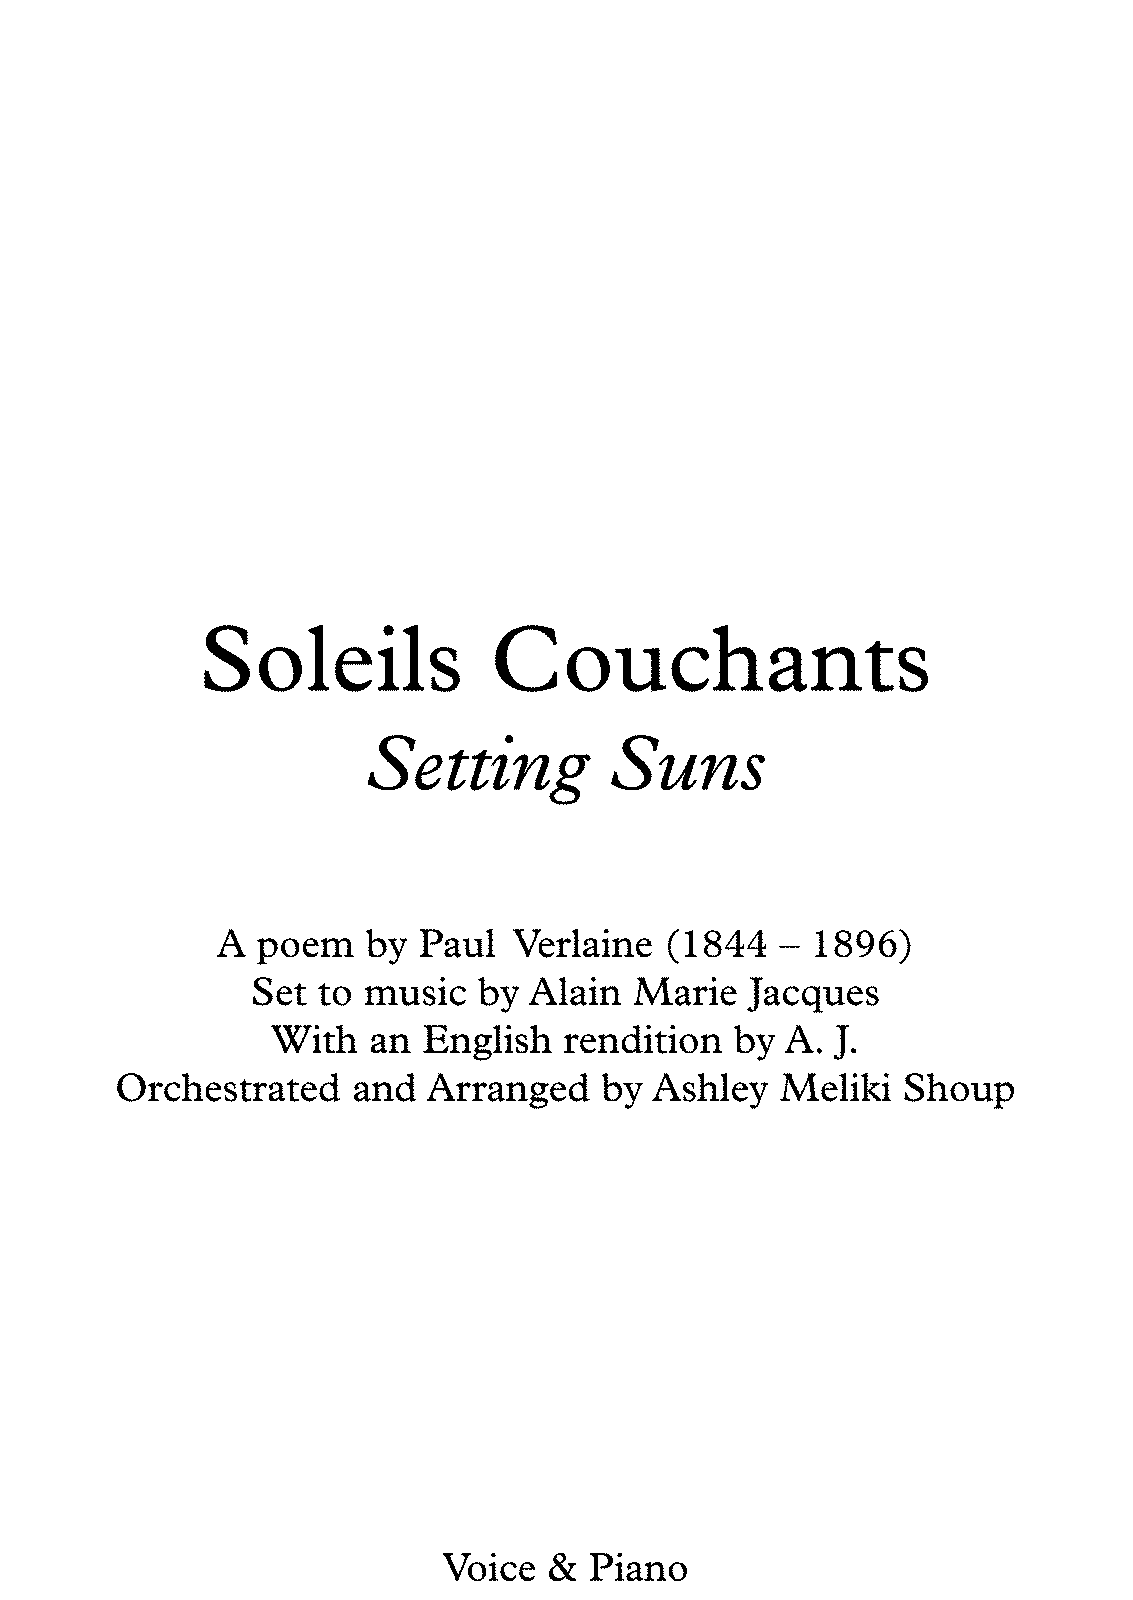 PMLP492773-Soleils Couchants (A. Jacques - Verlaine) - Voice, harmonica & piano - Full Score.pdf